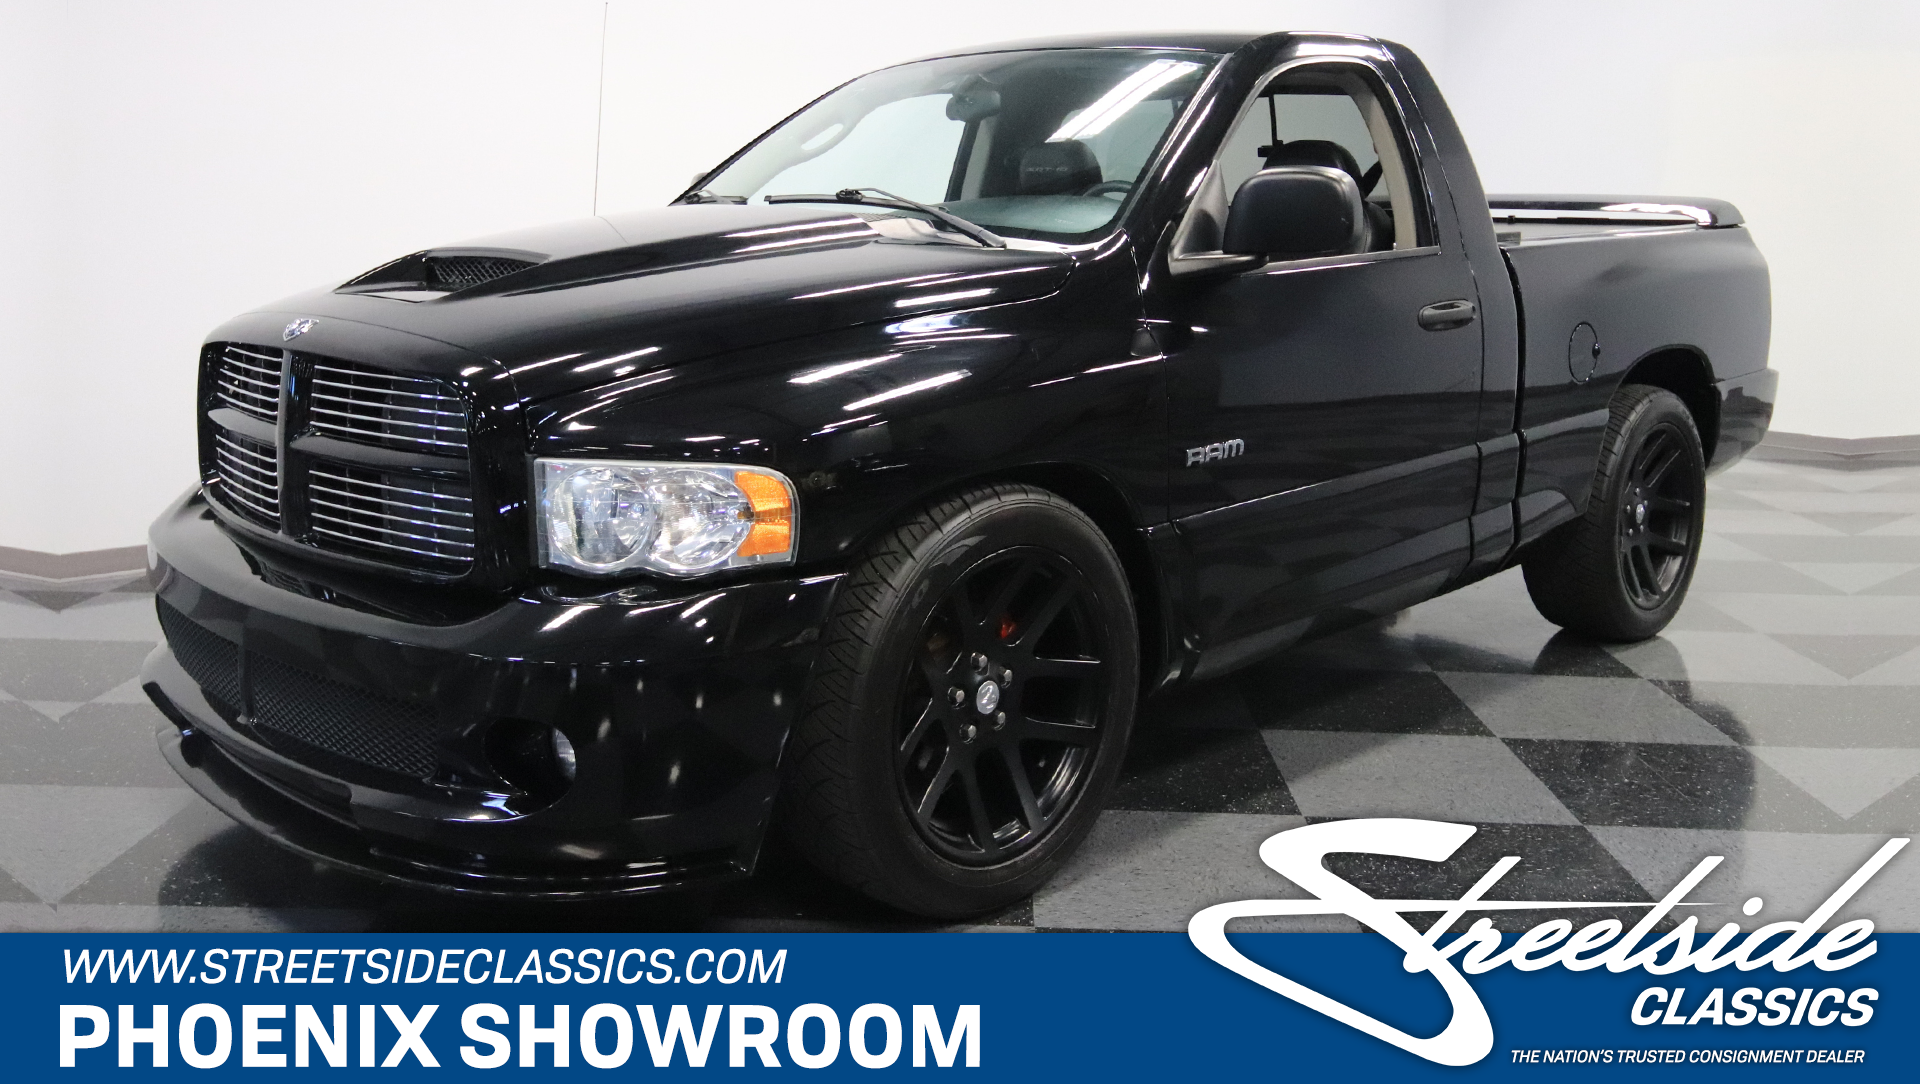 2005 dodge ram streetside classics the nation 39 s trusted classic car consignment dealer. Black Bedroom Furniture Sets. Home Design Ideas